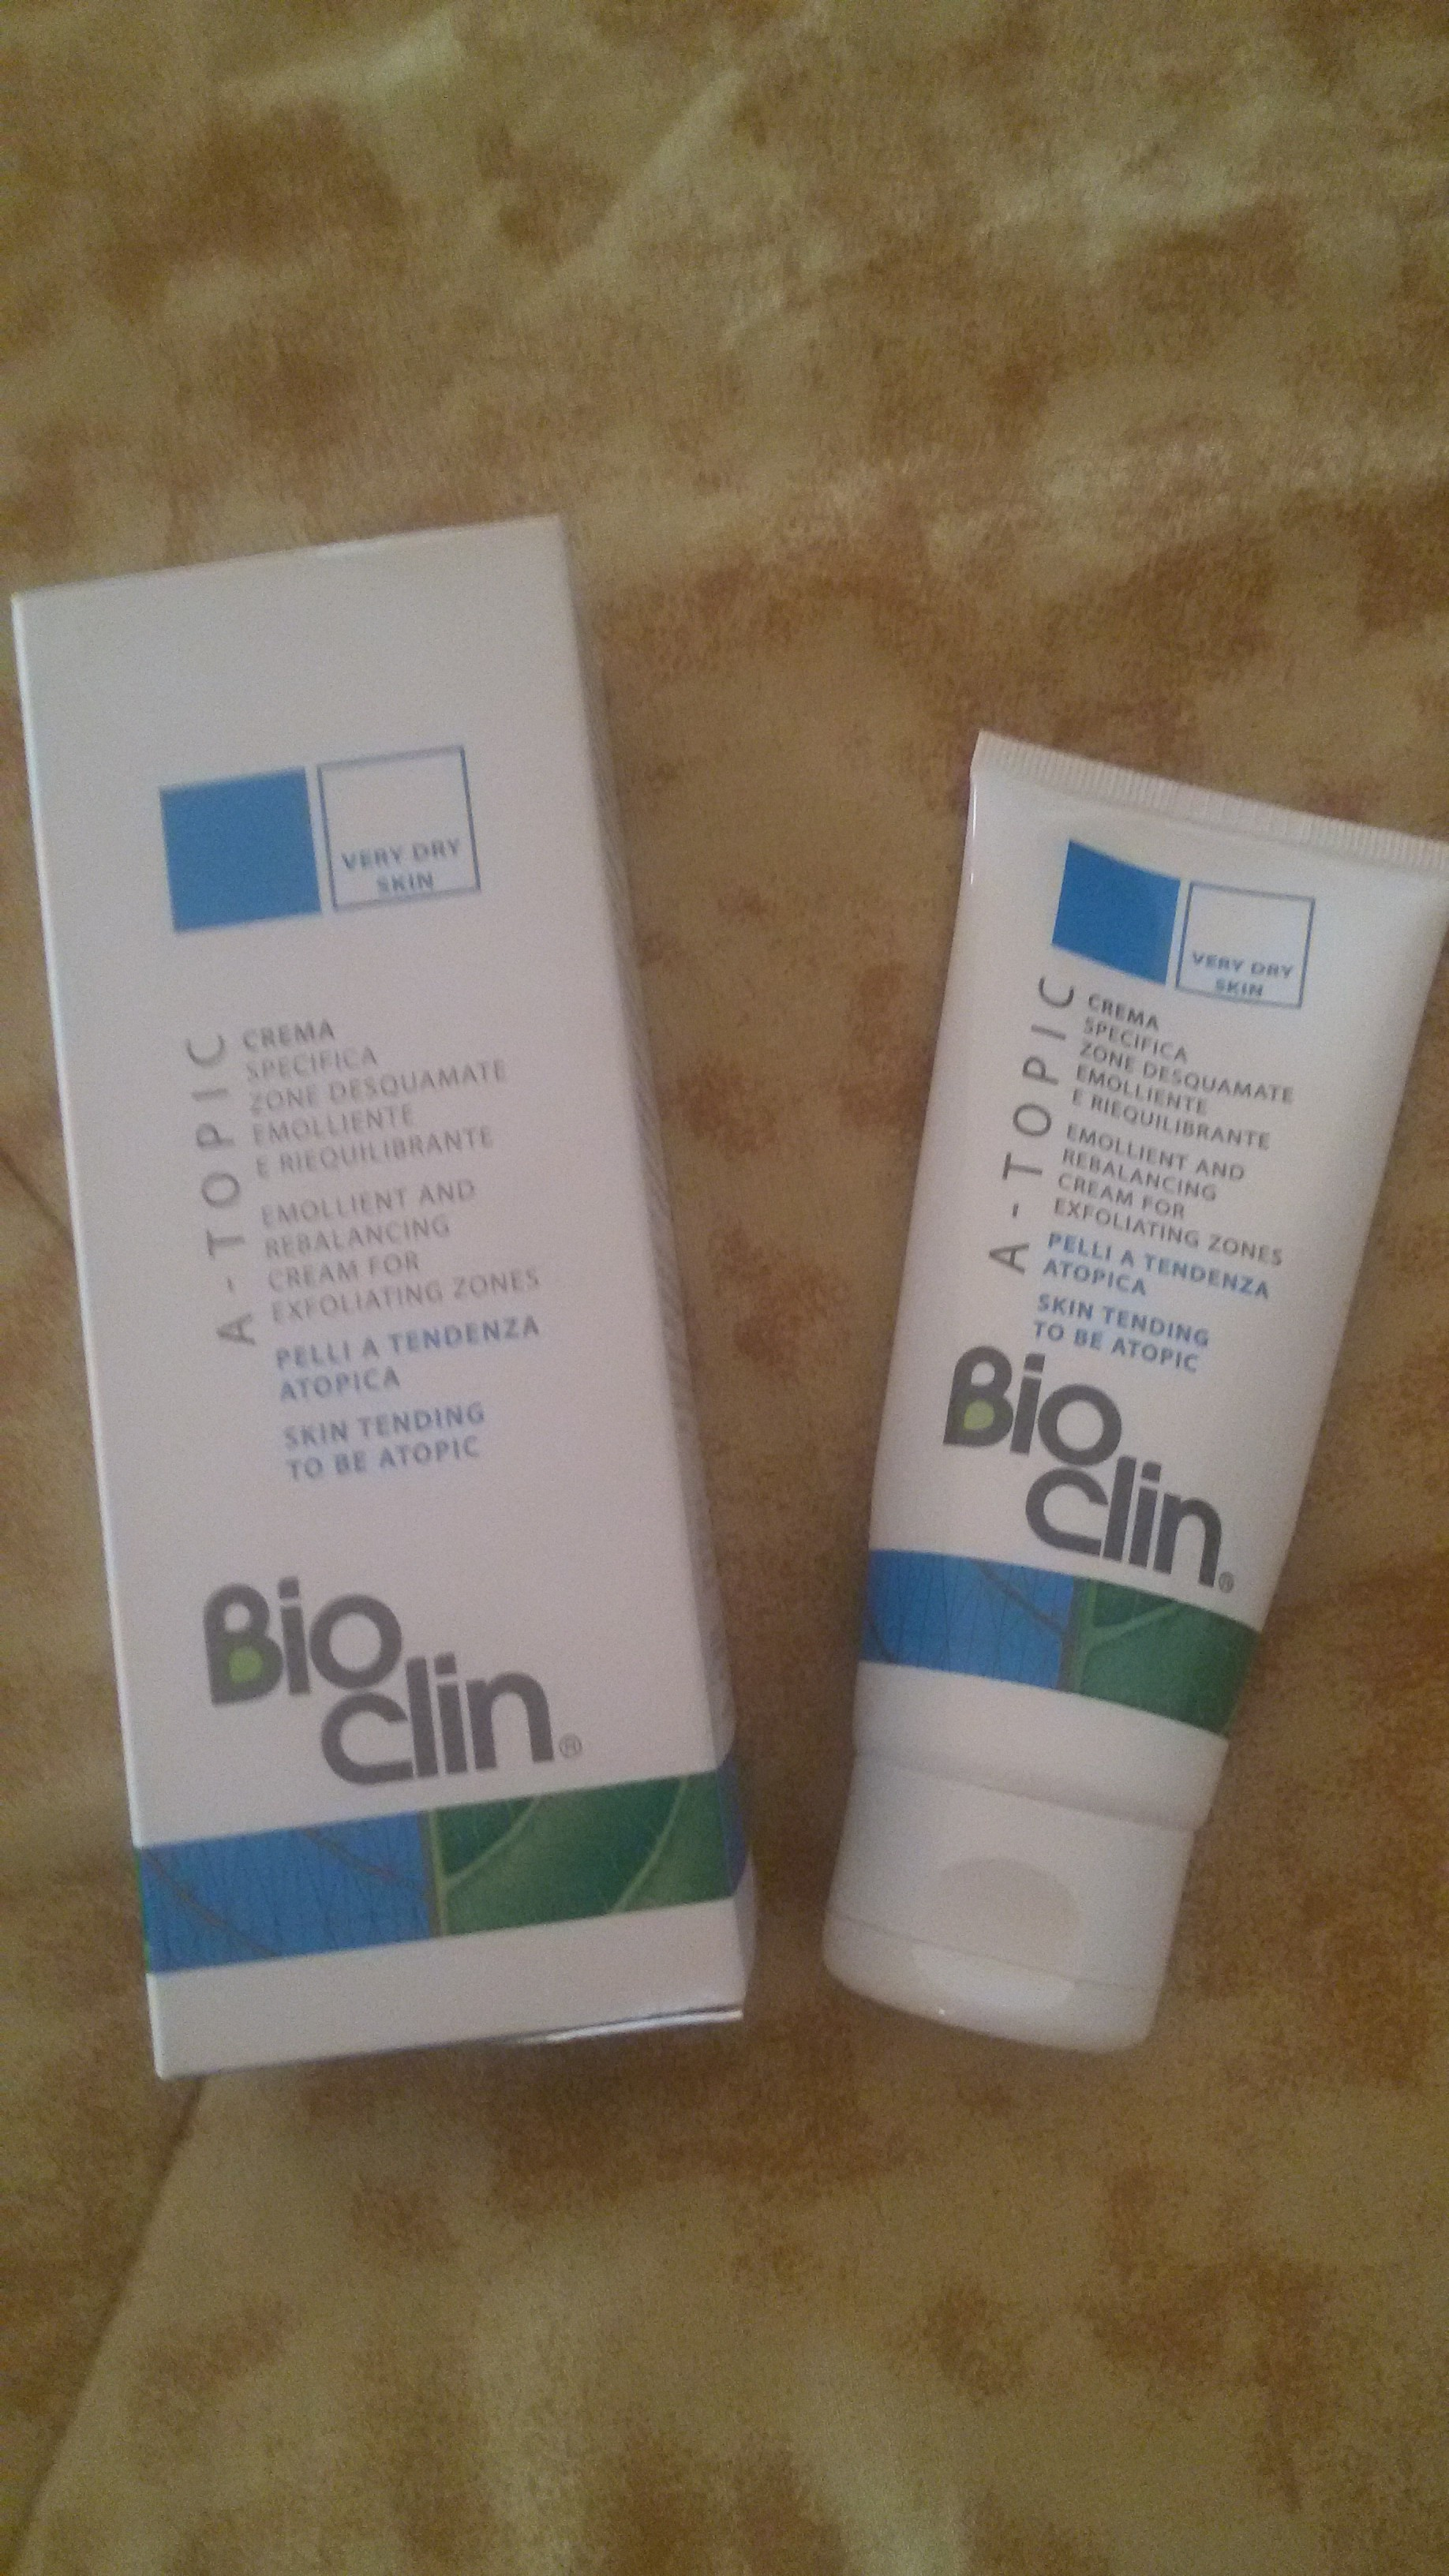 Bioclin A-Topic Crema Specifica Zone Desquamate